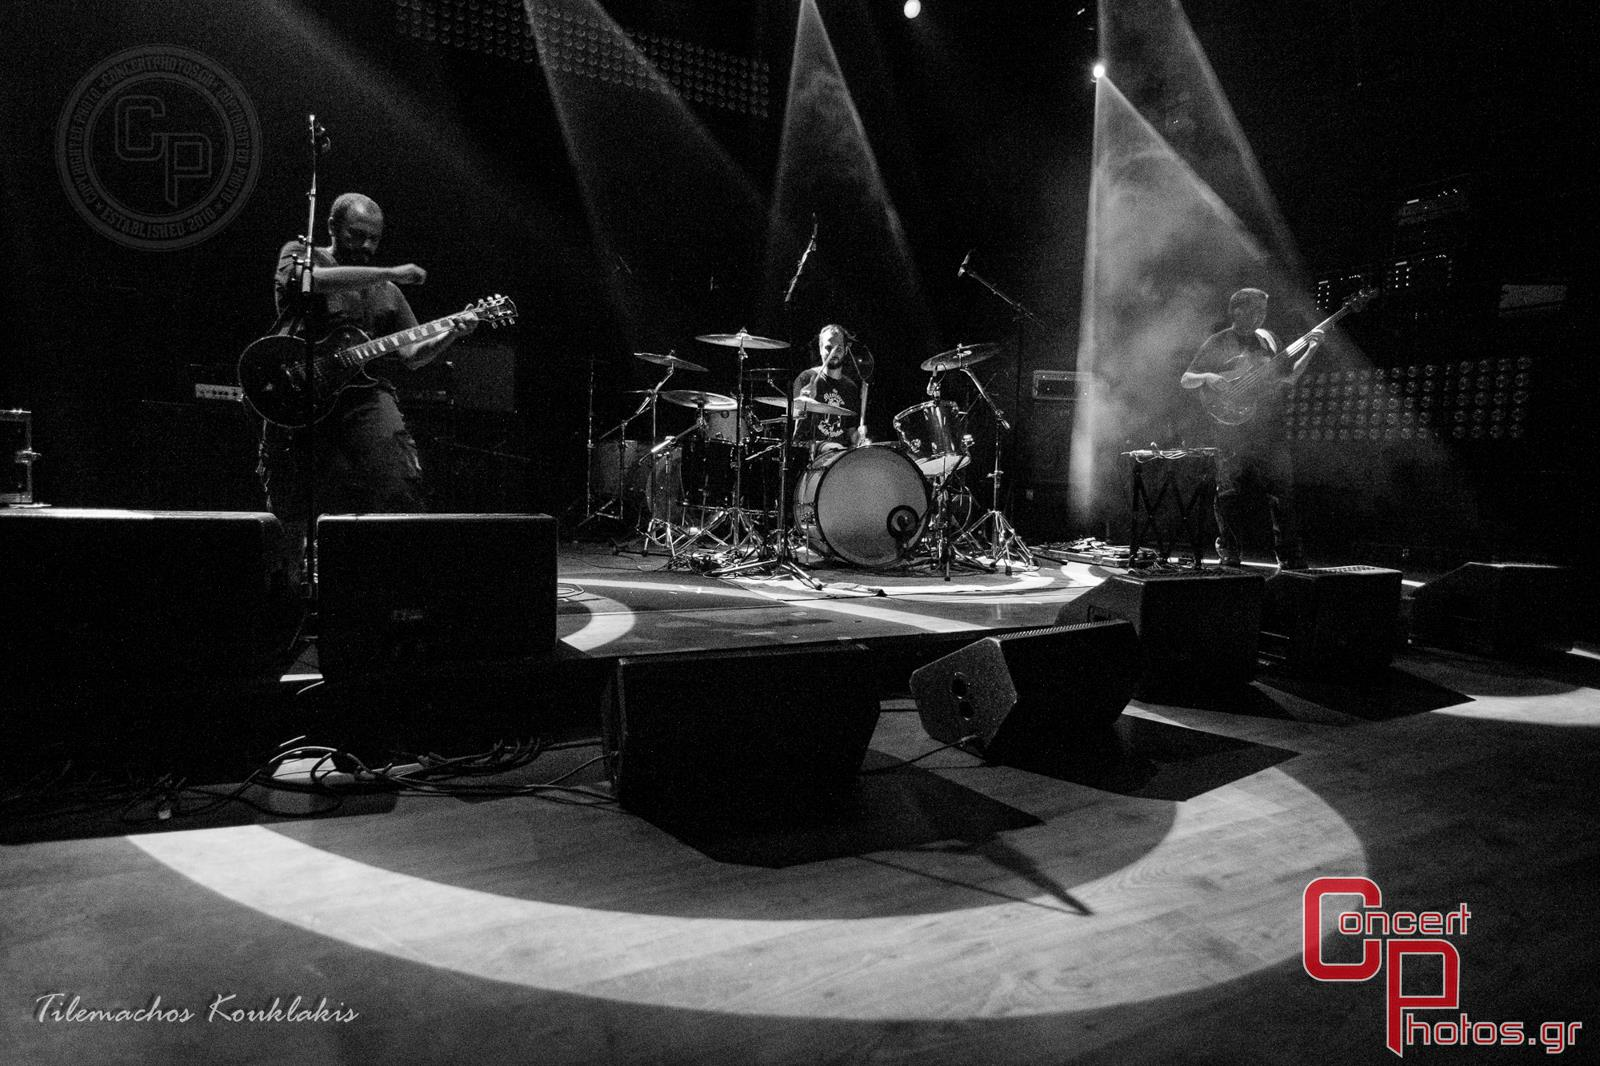 Neurosis-Neurosis photographer:  - concertphotos_20140707_23_56_48-6